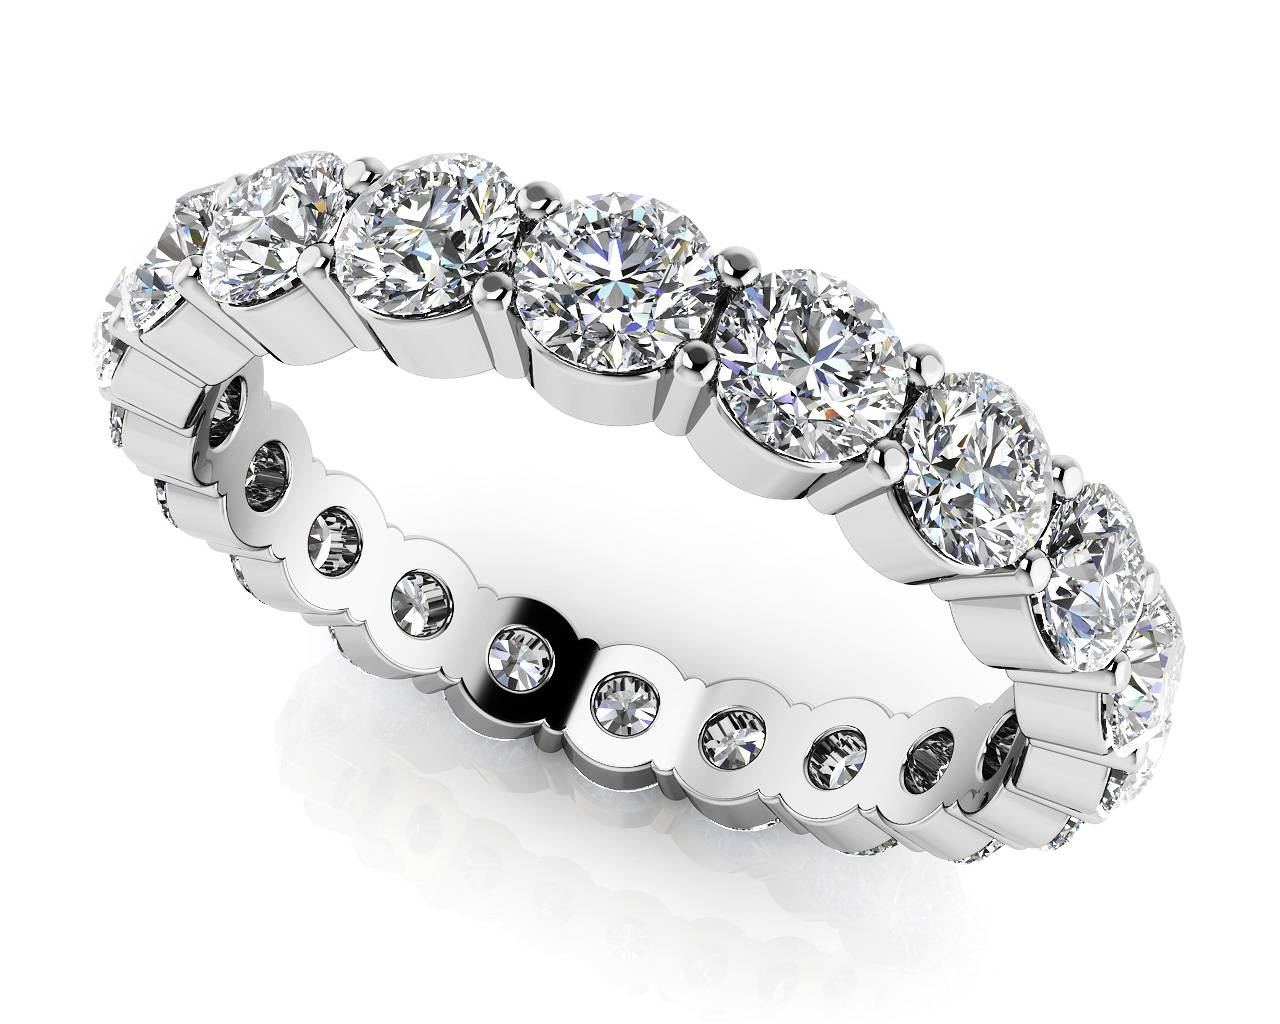 Design Your Own Diamond Anniversary Ring & Eternity Ring Pertaining To Recent 25 Year Wedding Anniversary Rings (View 15 of 25)